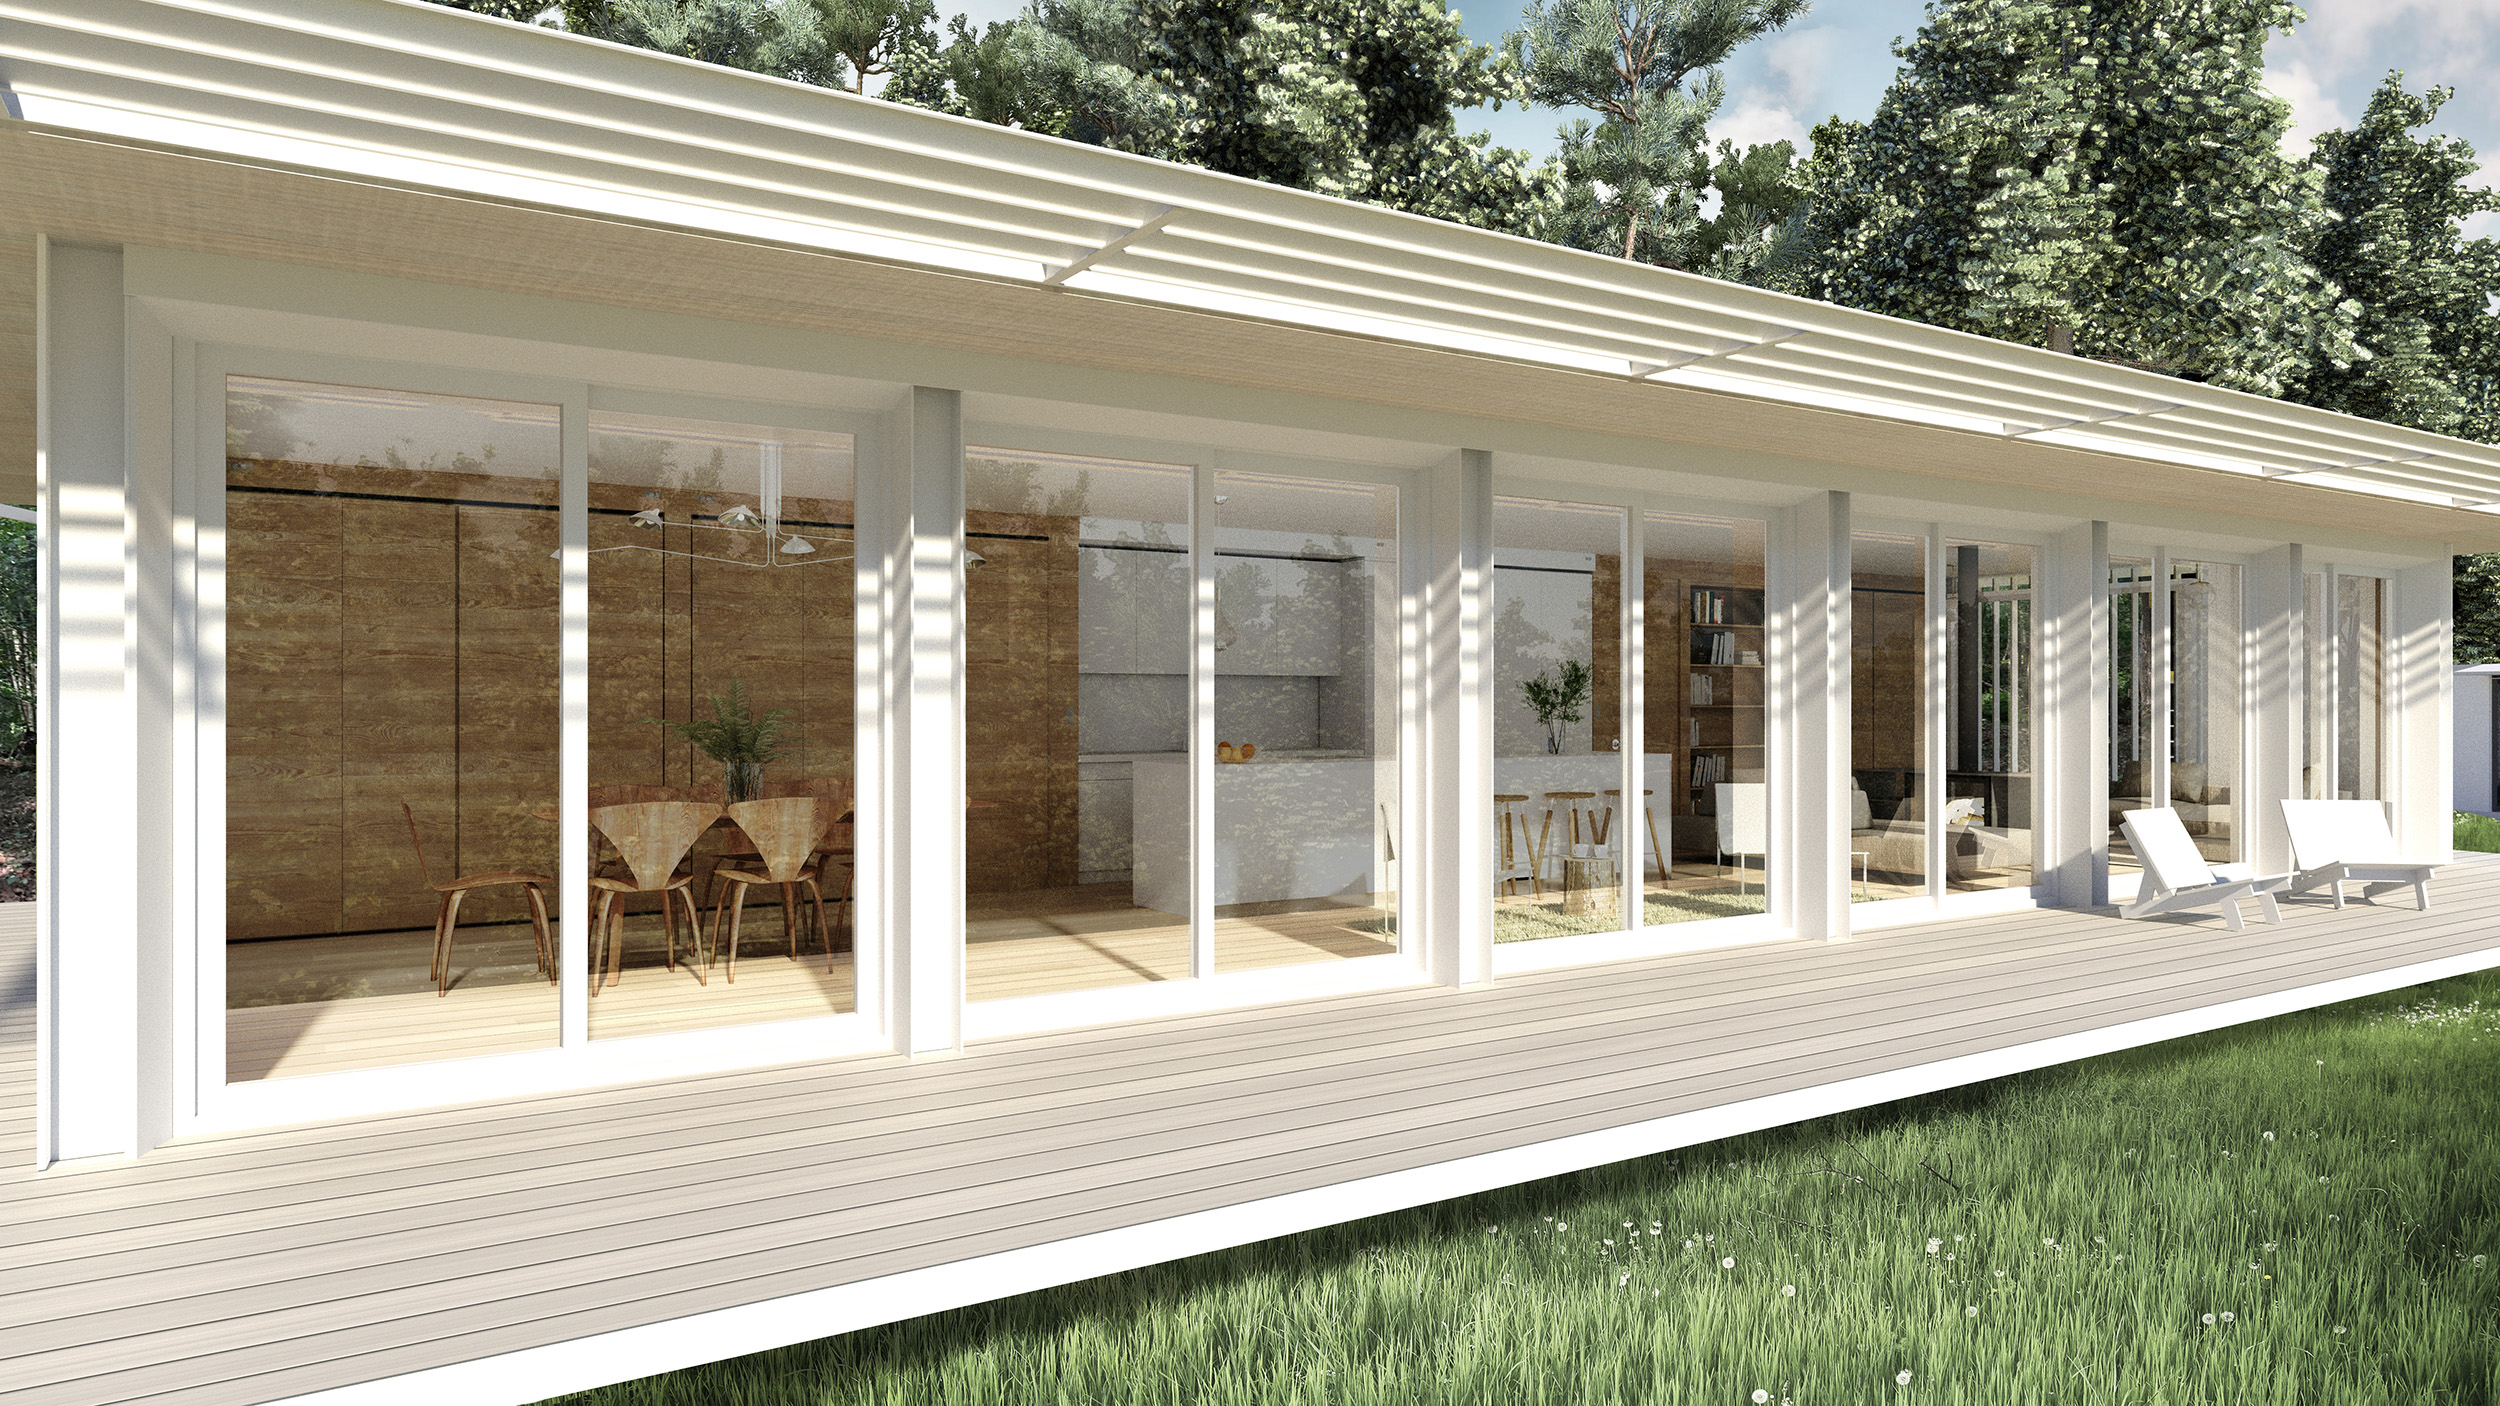 The 55ft long South Facing Porch with fixed sunshading and full-height double sliding patio doors for indoor/outdoor living.